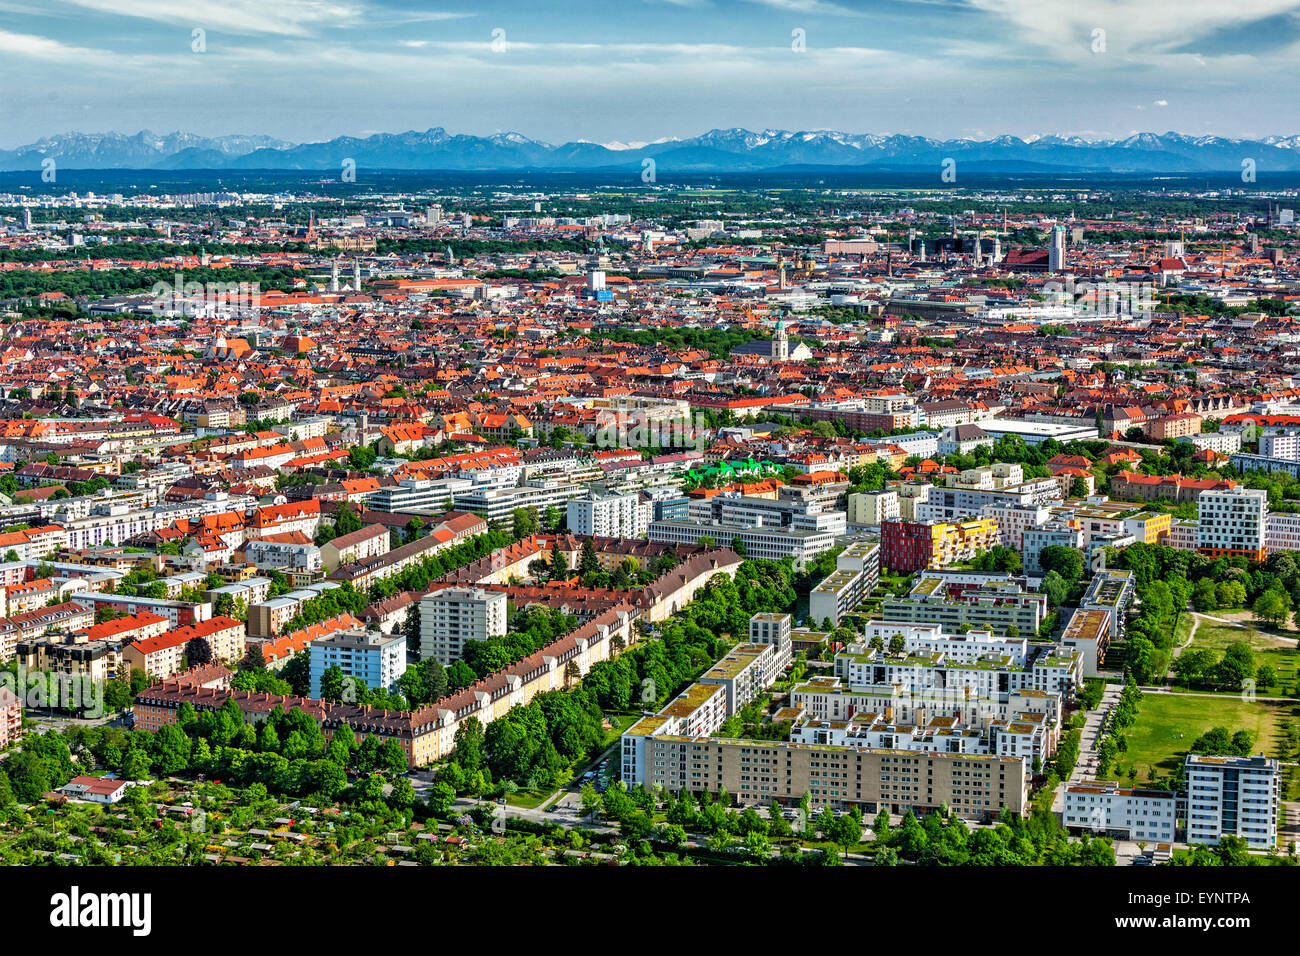 Aerial view of Munich. Munich, Bavaria, Germany - Stock Image